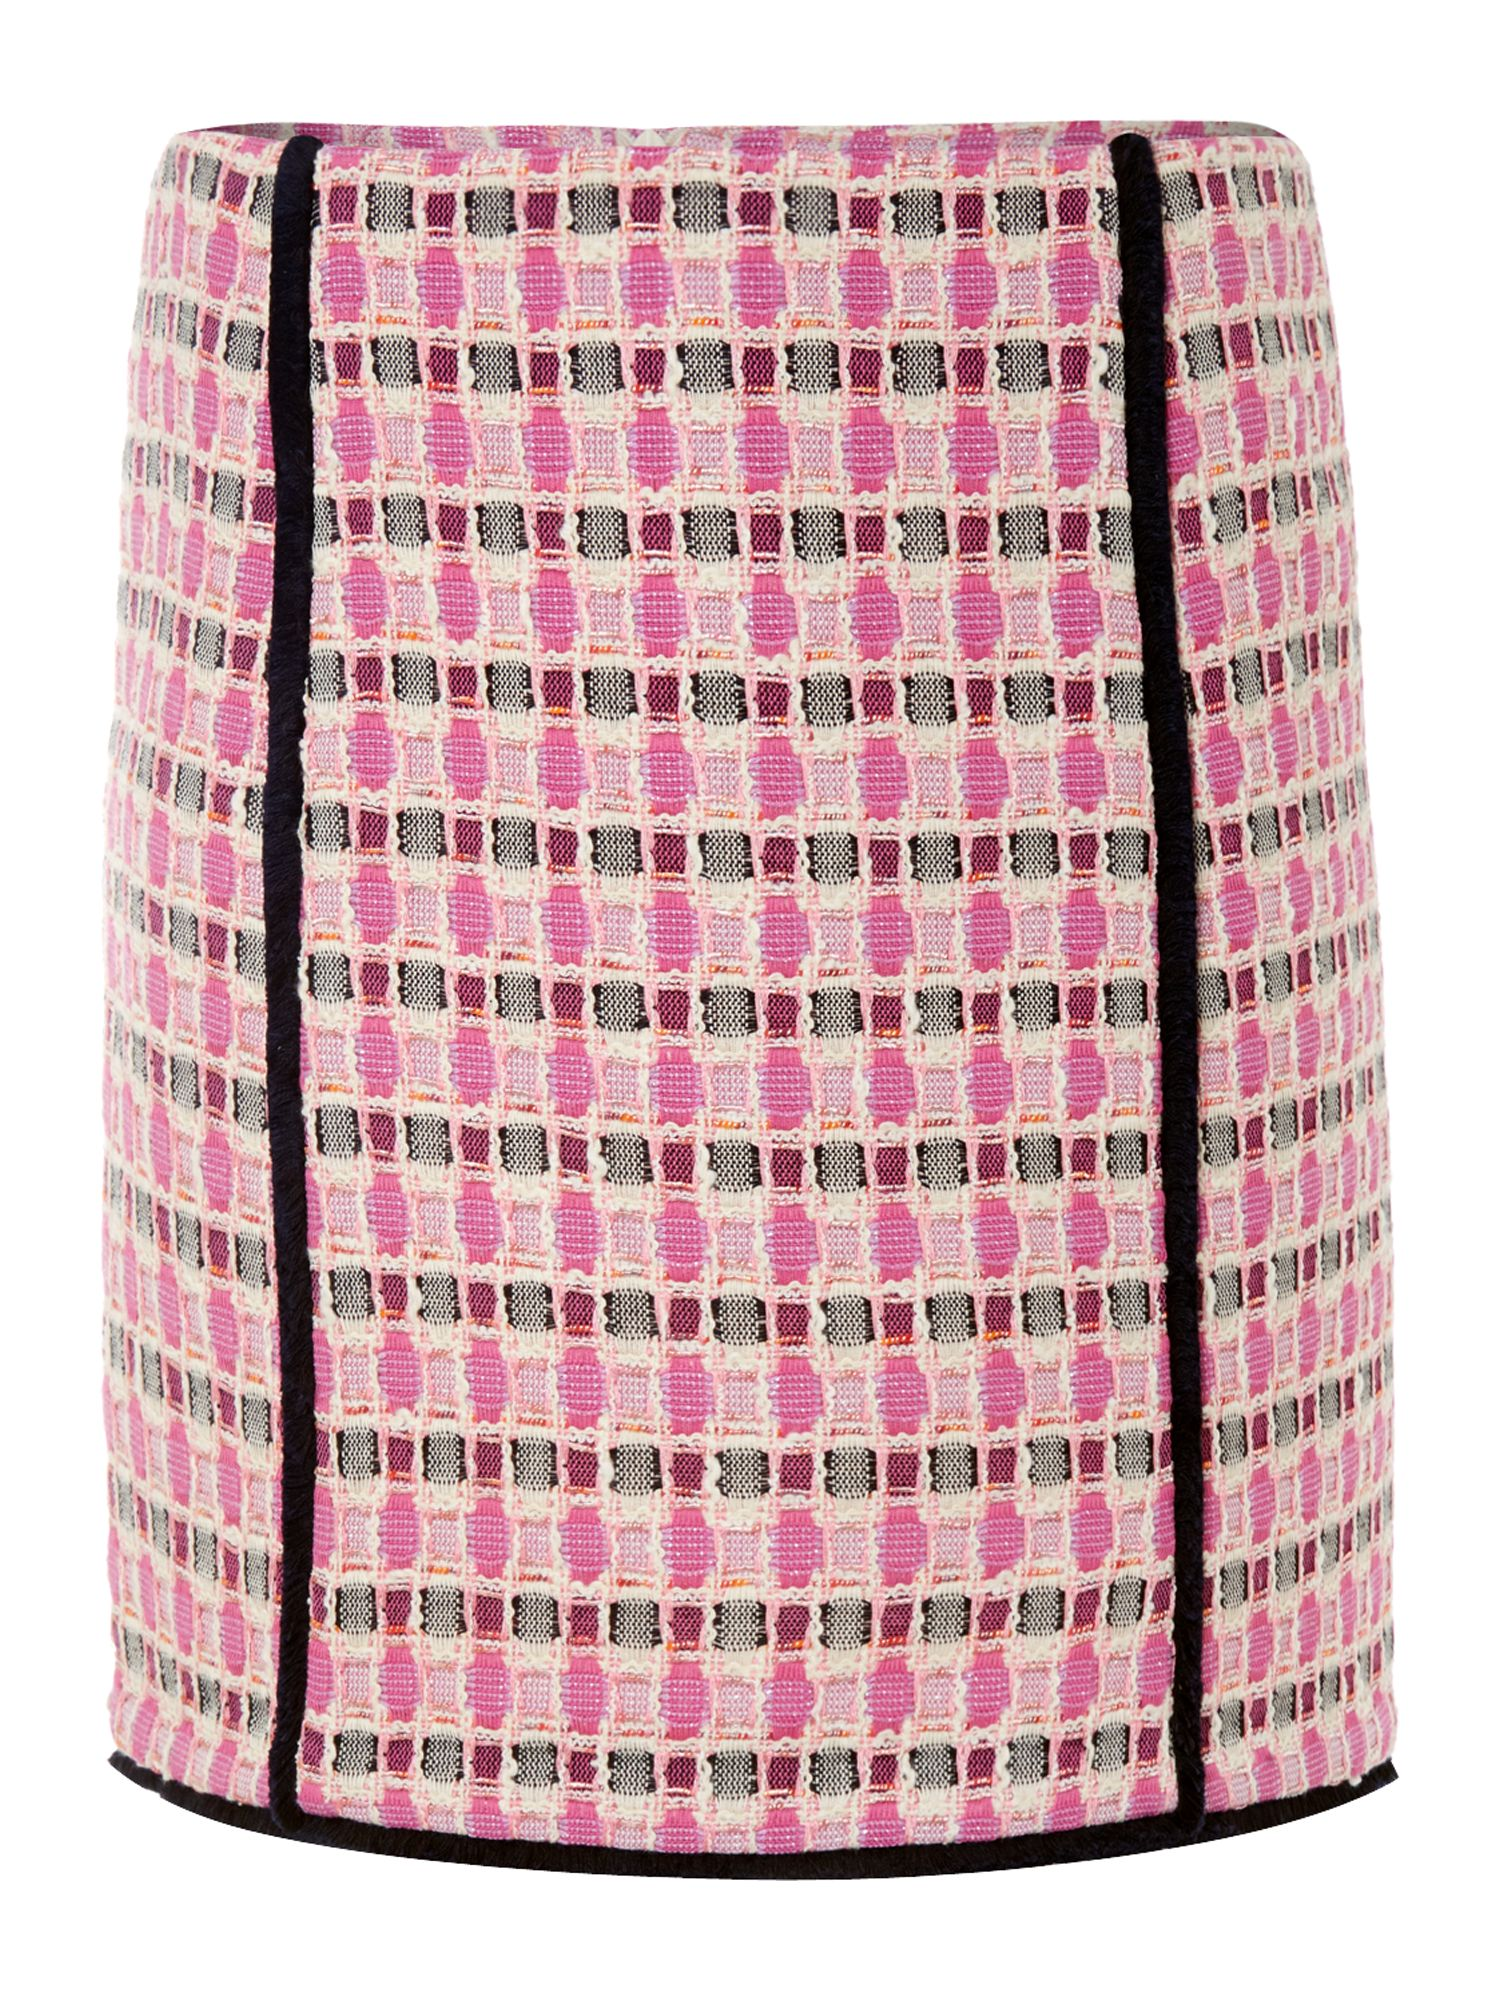 Bruco boucle a-line skirt in check